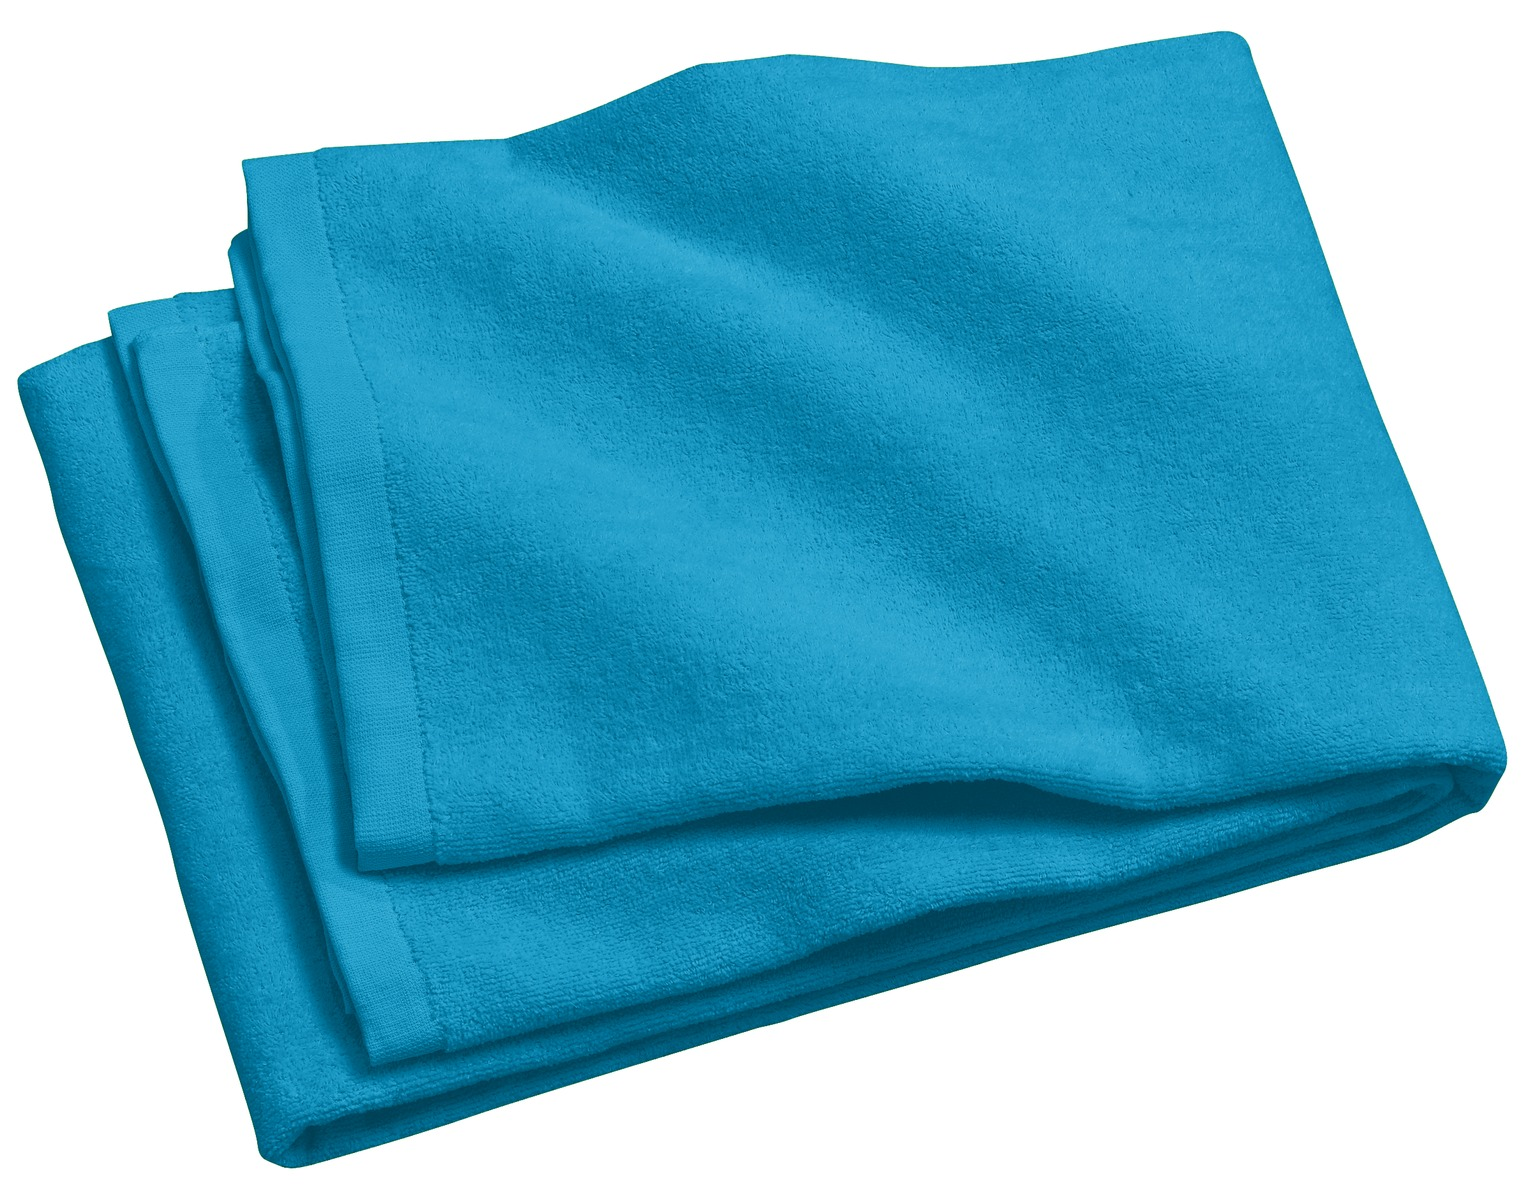 Port Authority ®  - Beach Towel.  PT42 - Turquoise